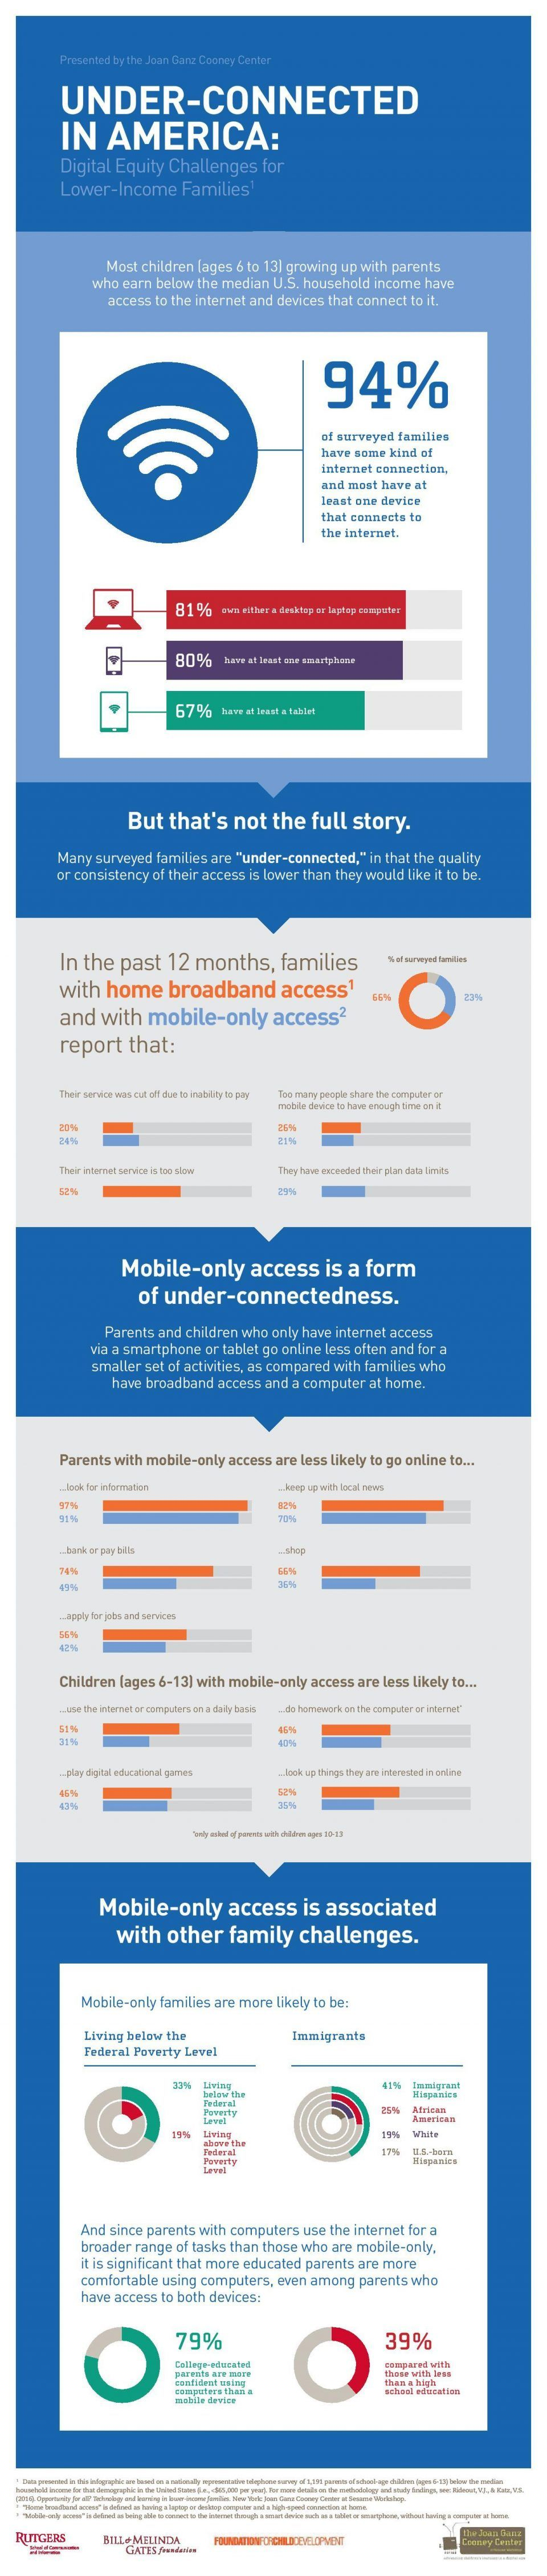 Digital Equity Challenges for Lower-Income Families Infographic